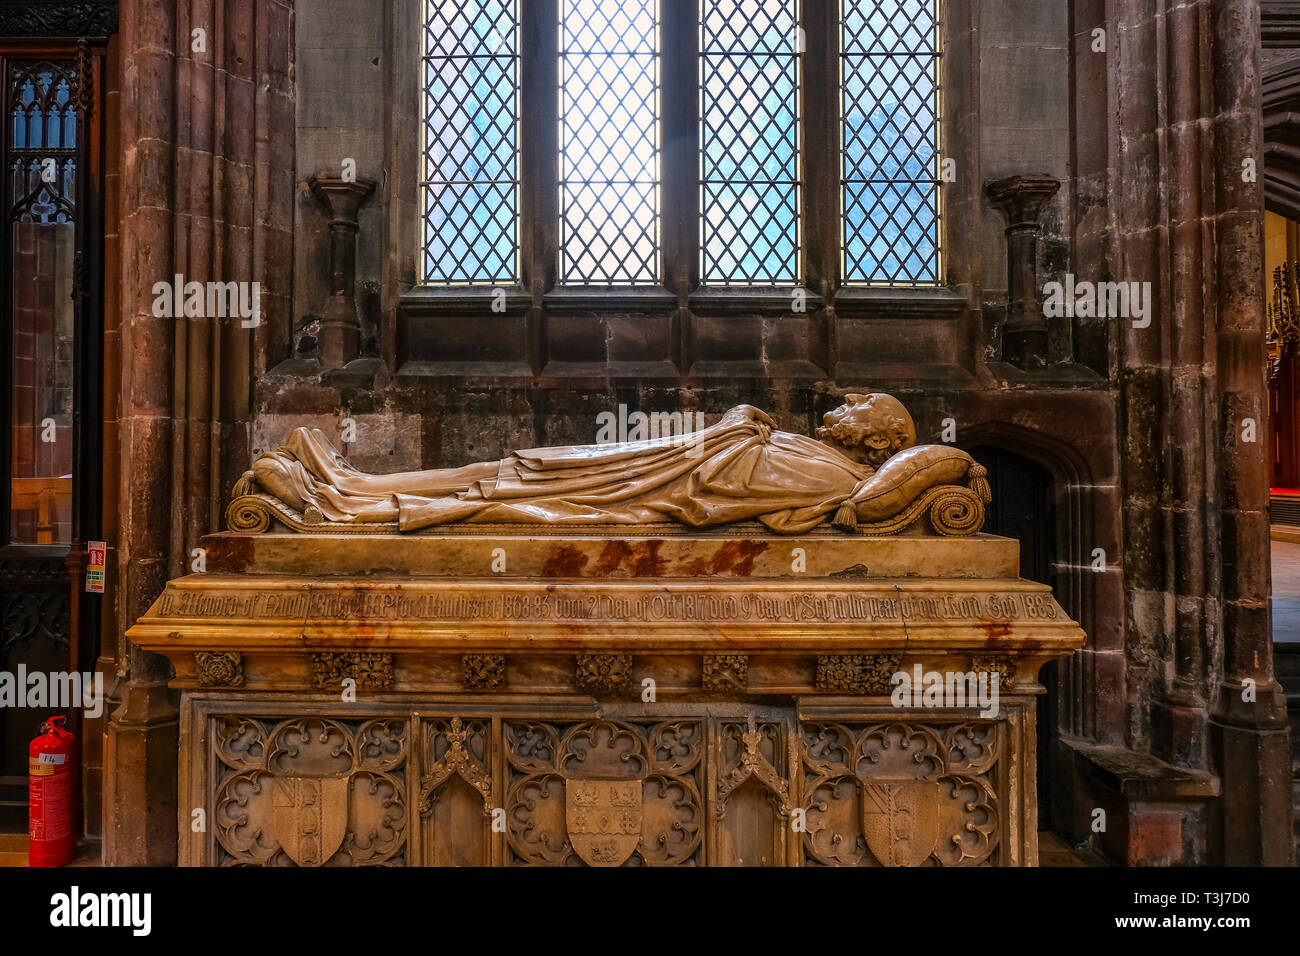 Manchester, UK - May 18 2018: Manchester Cathedral is the mother church of the Anglican Diocese of Manchester, seat of the Bishop of Manchester and th - Stock Image